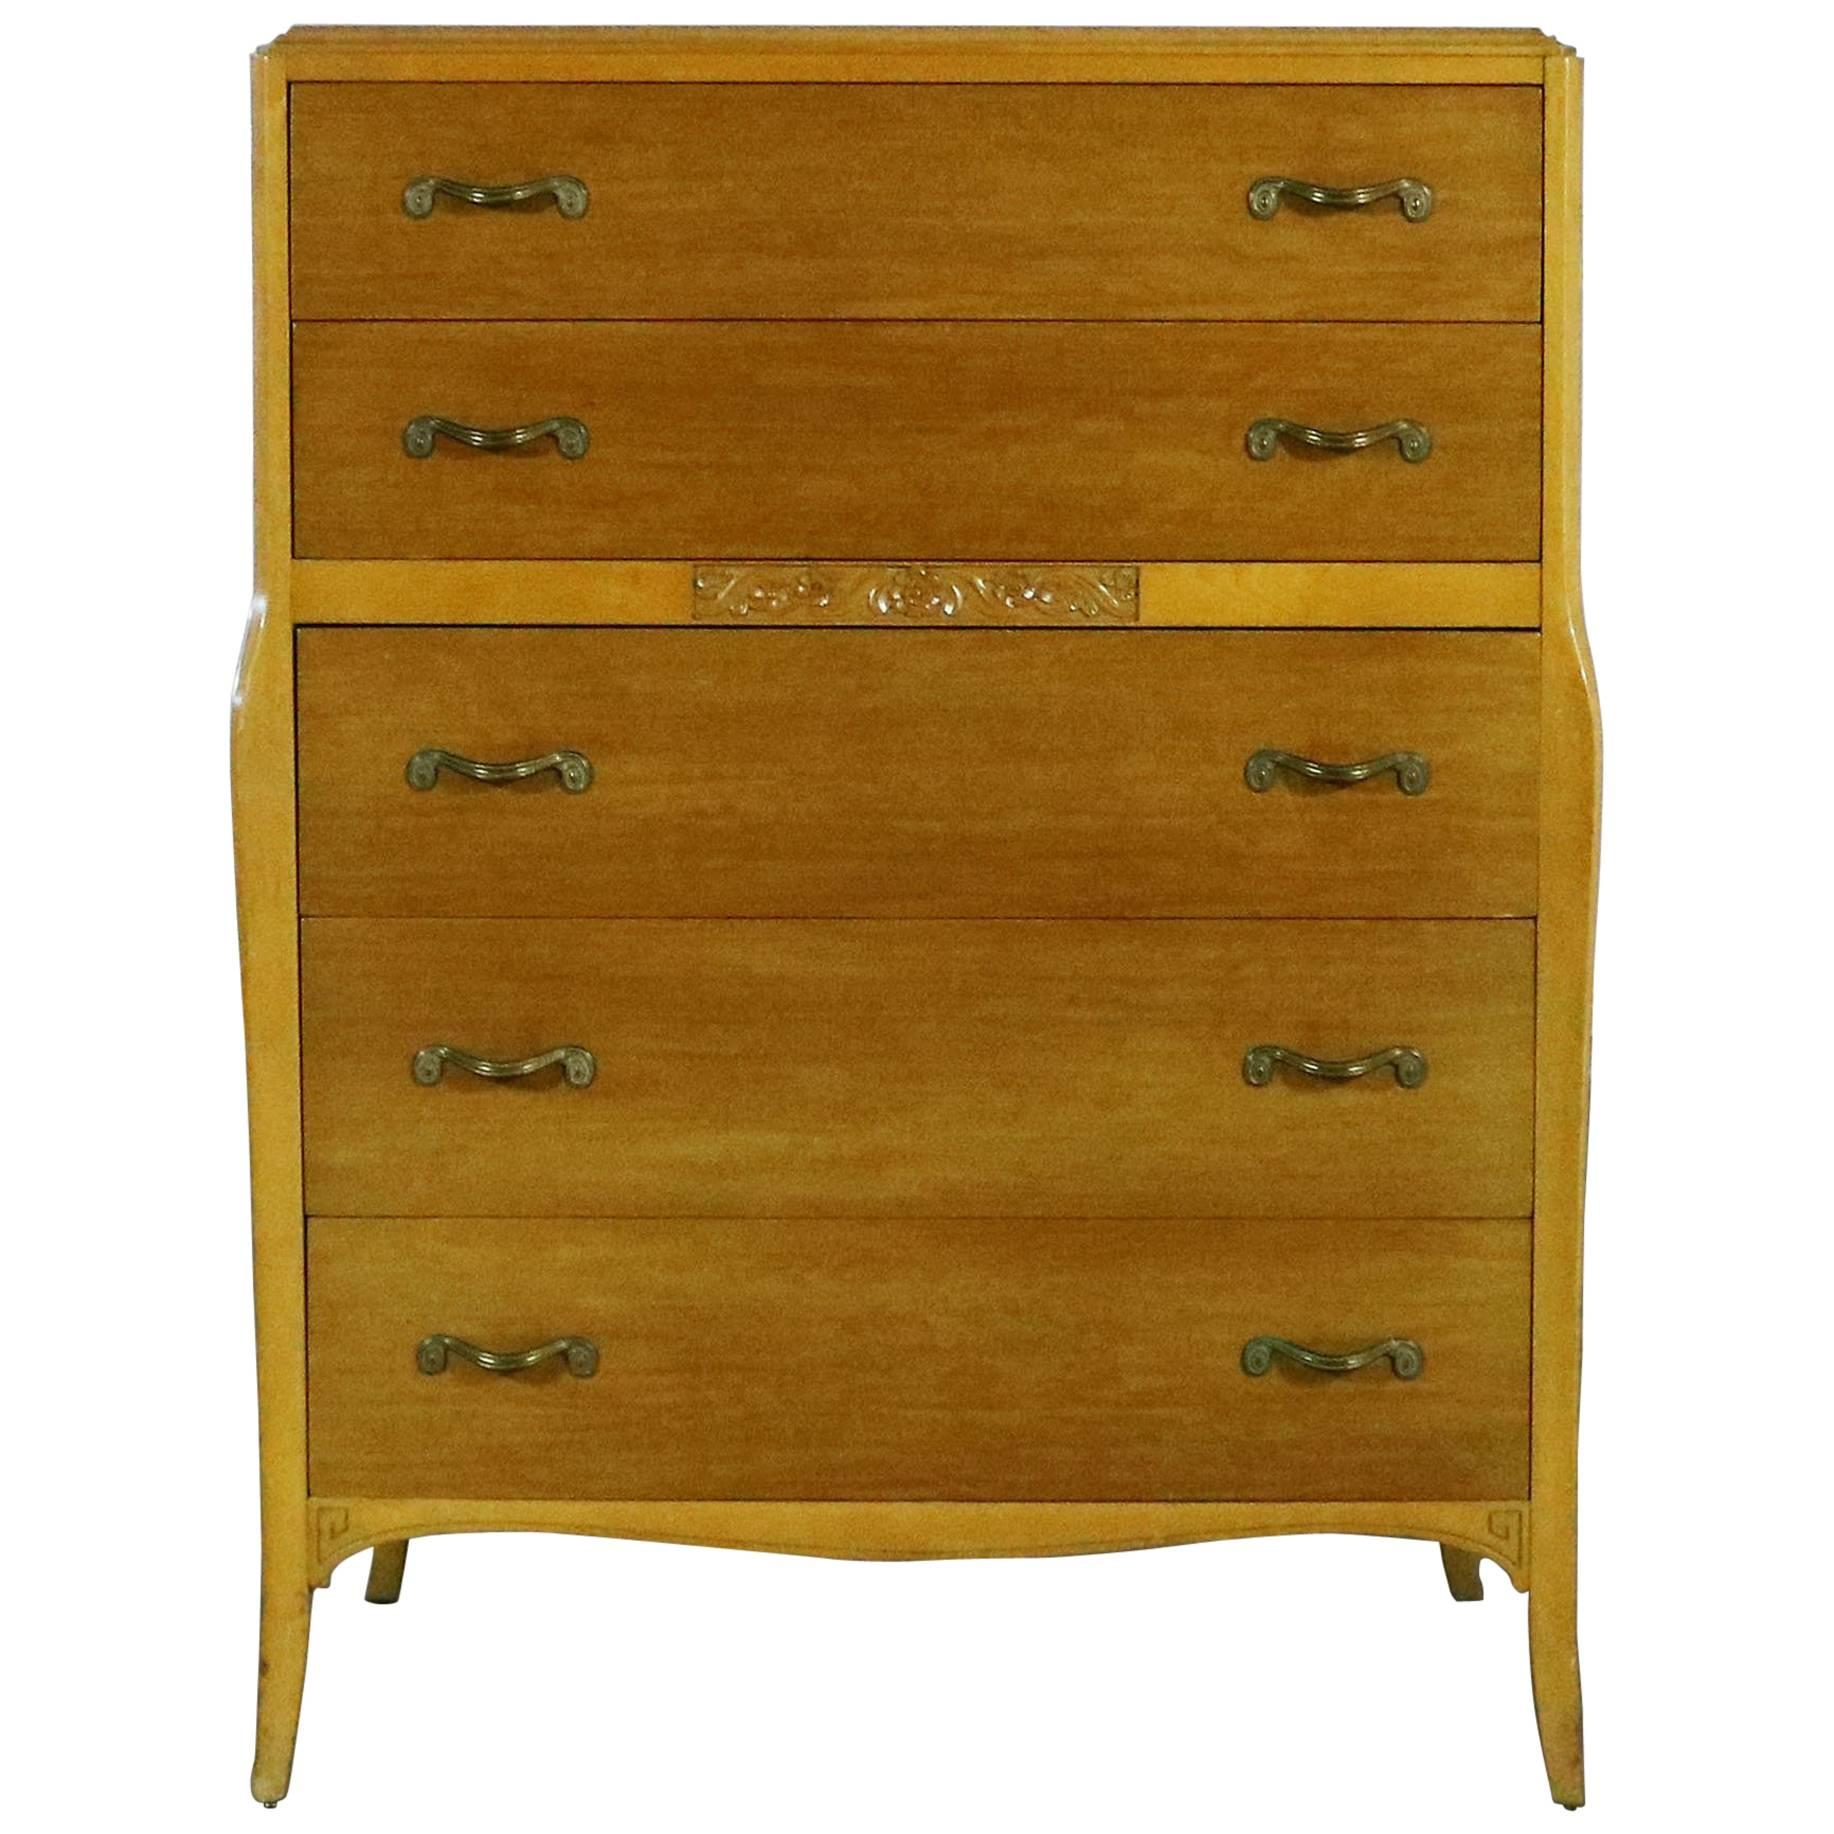 Genial Art Deco Style Tall Chest Of Drawers By Rway Northern Furniture Co. Of  Sheboygan